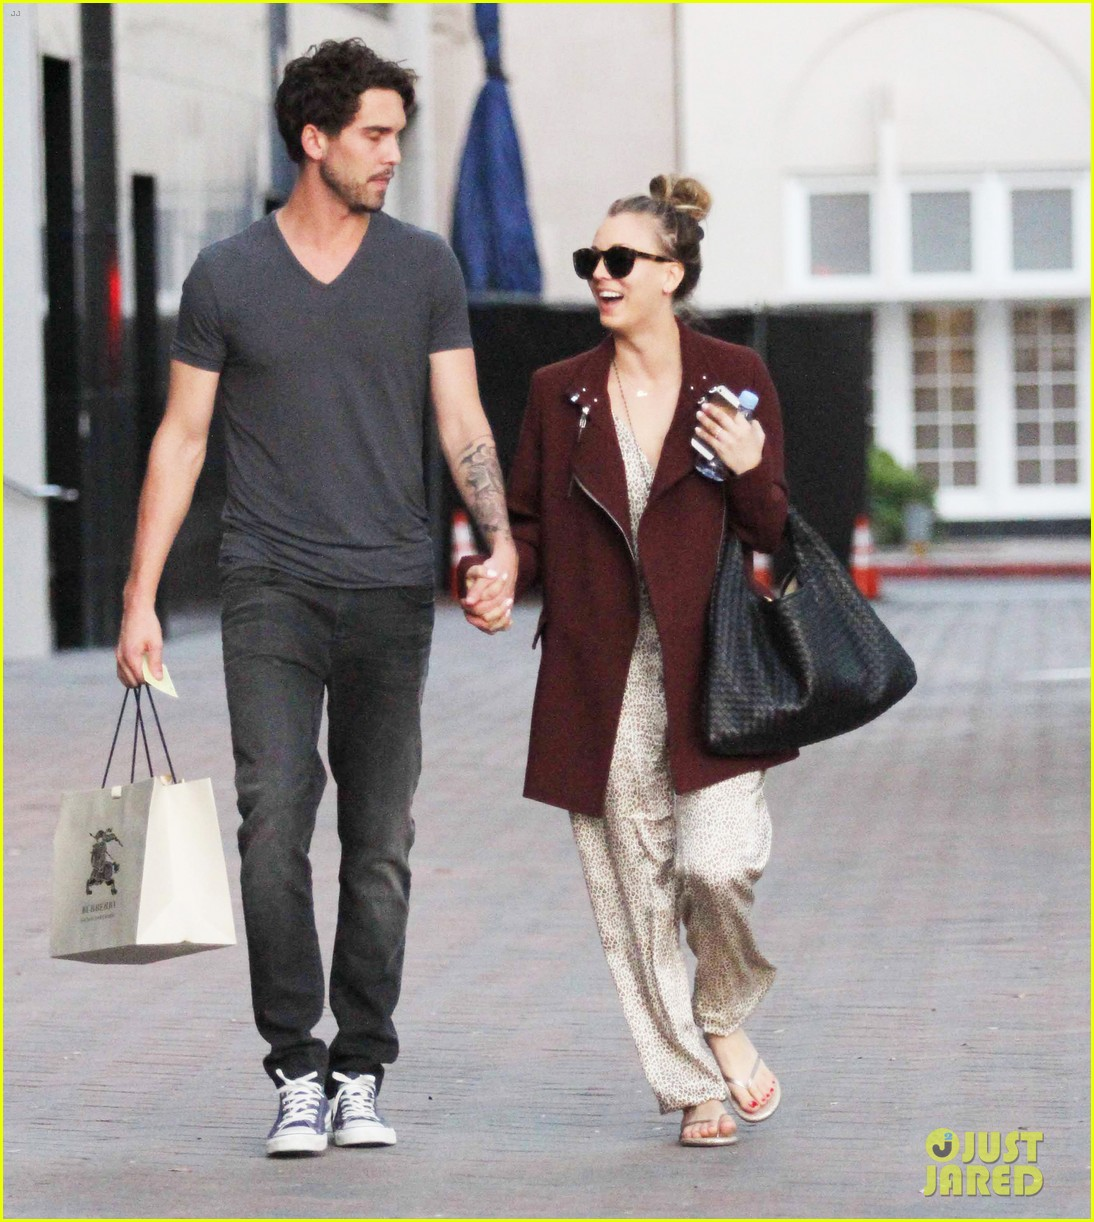 kaley cuoco steps out with ryan sweeting after the pcas 083026996